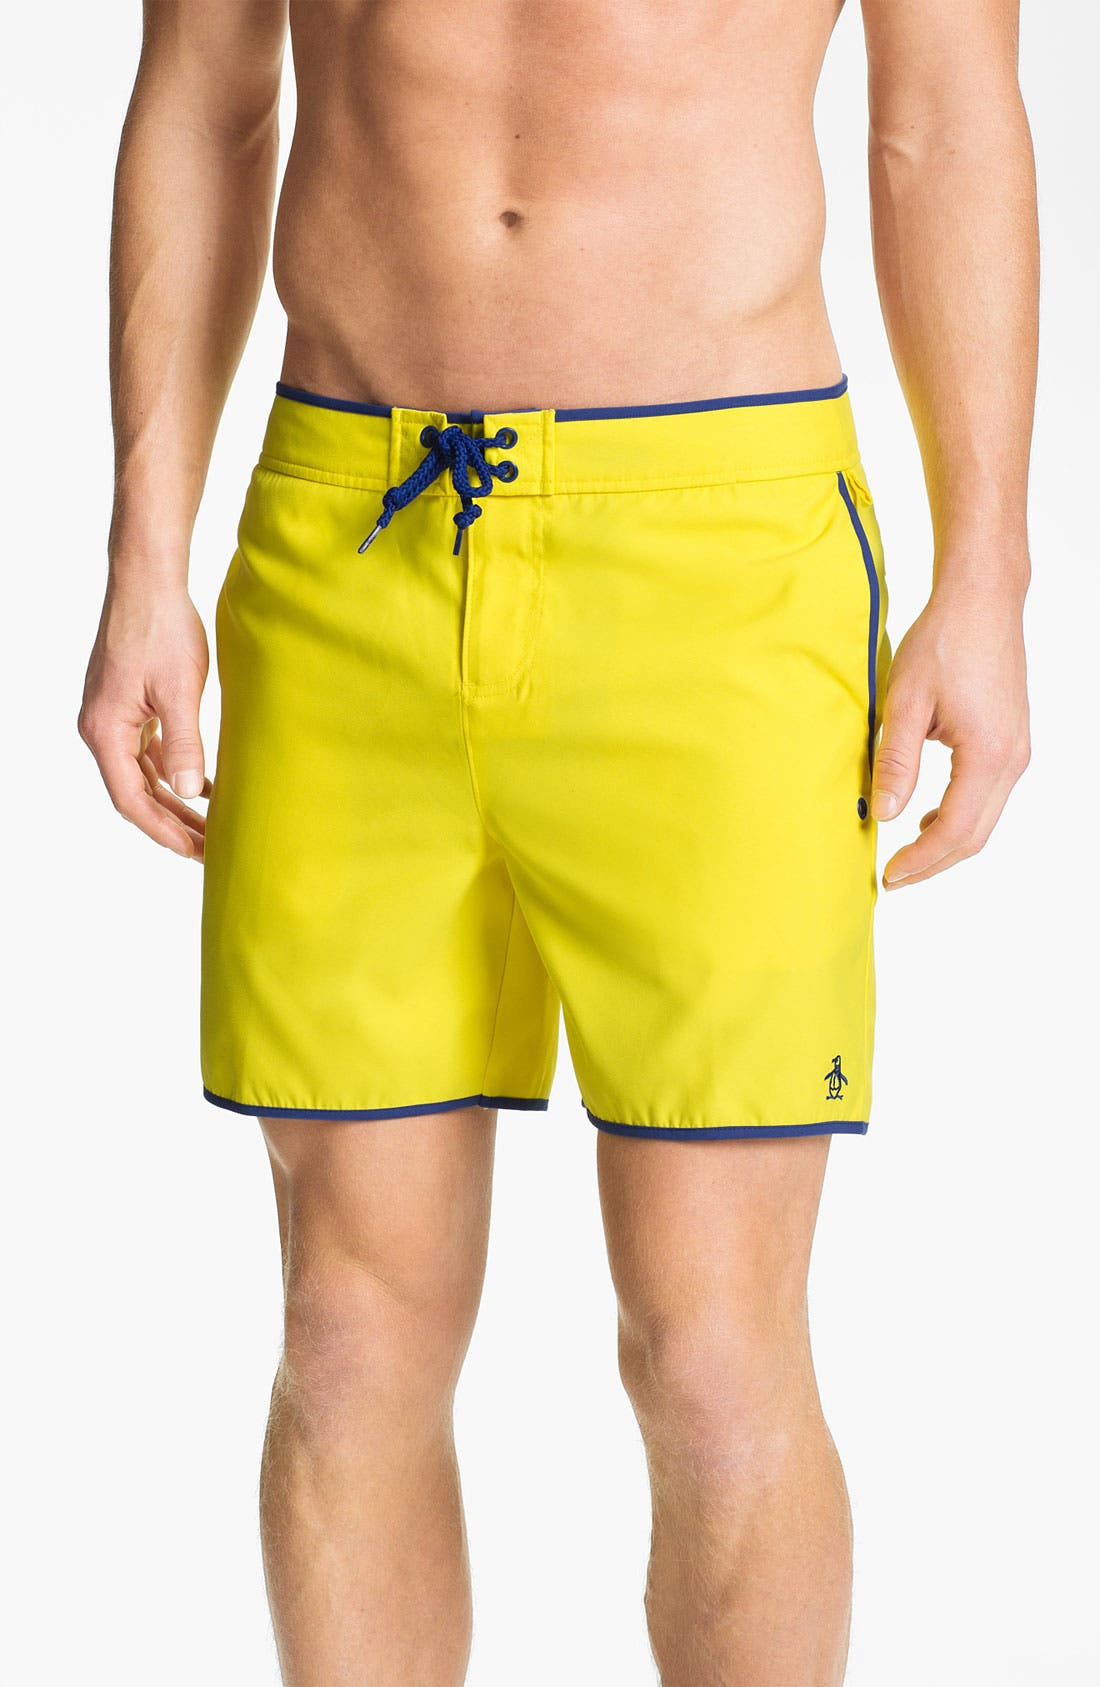 Alternate Image 1 Selected - Original Penguin Swim Shorts